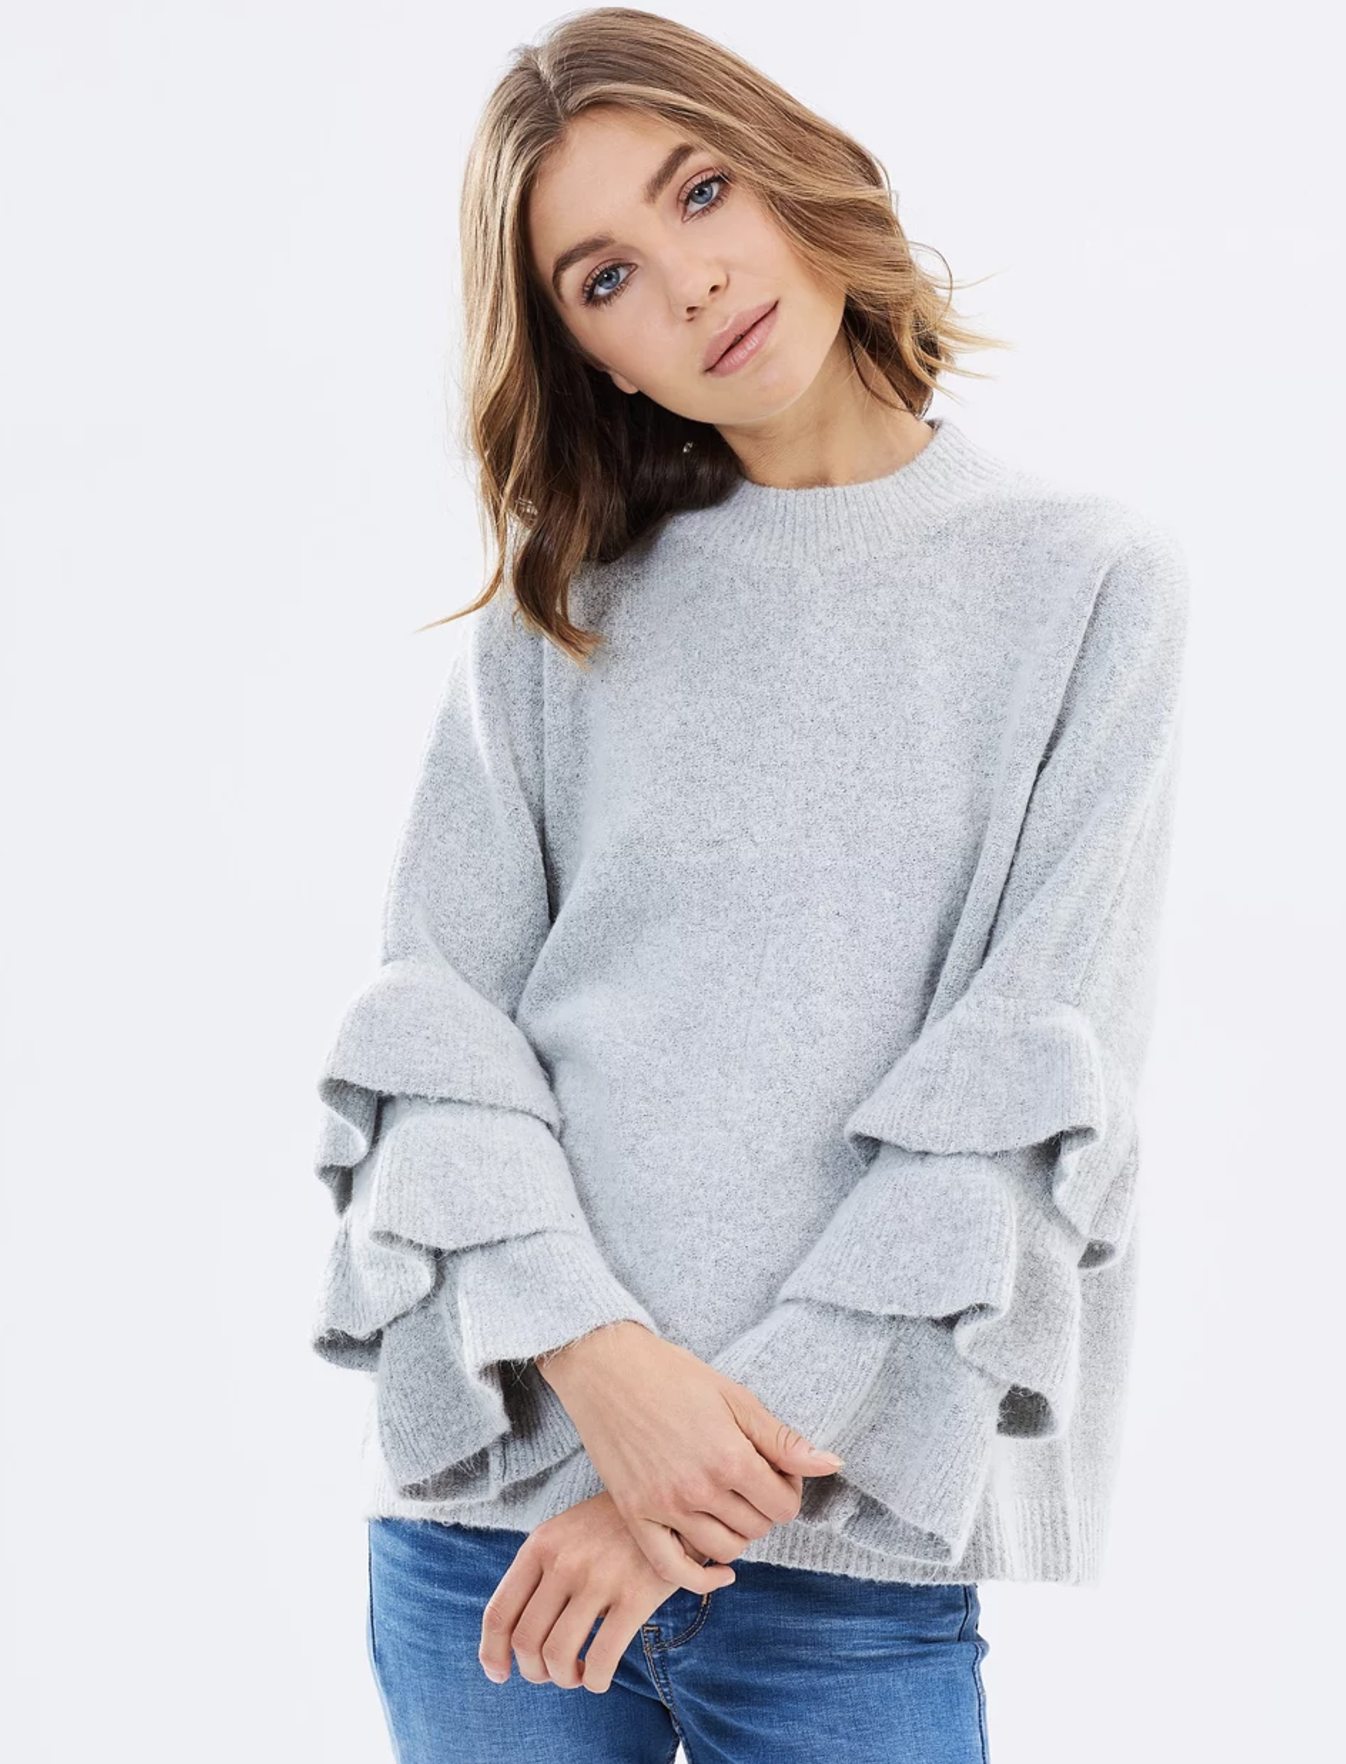 Atmos & Here aymeli frill sleeve knit $69.95